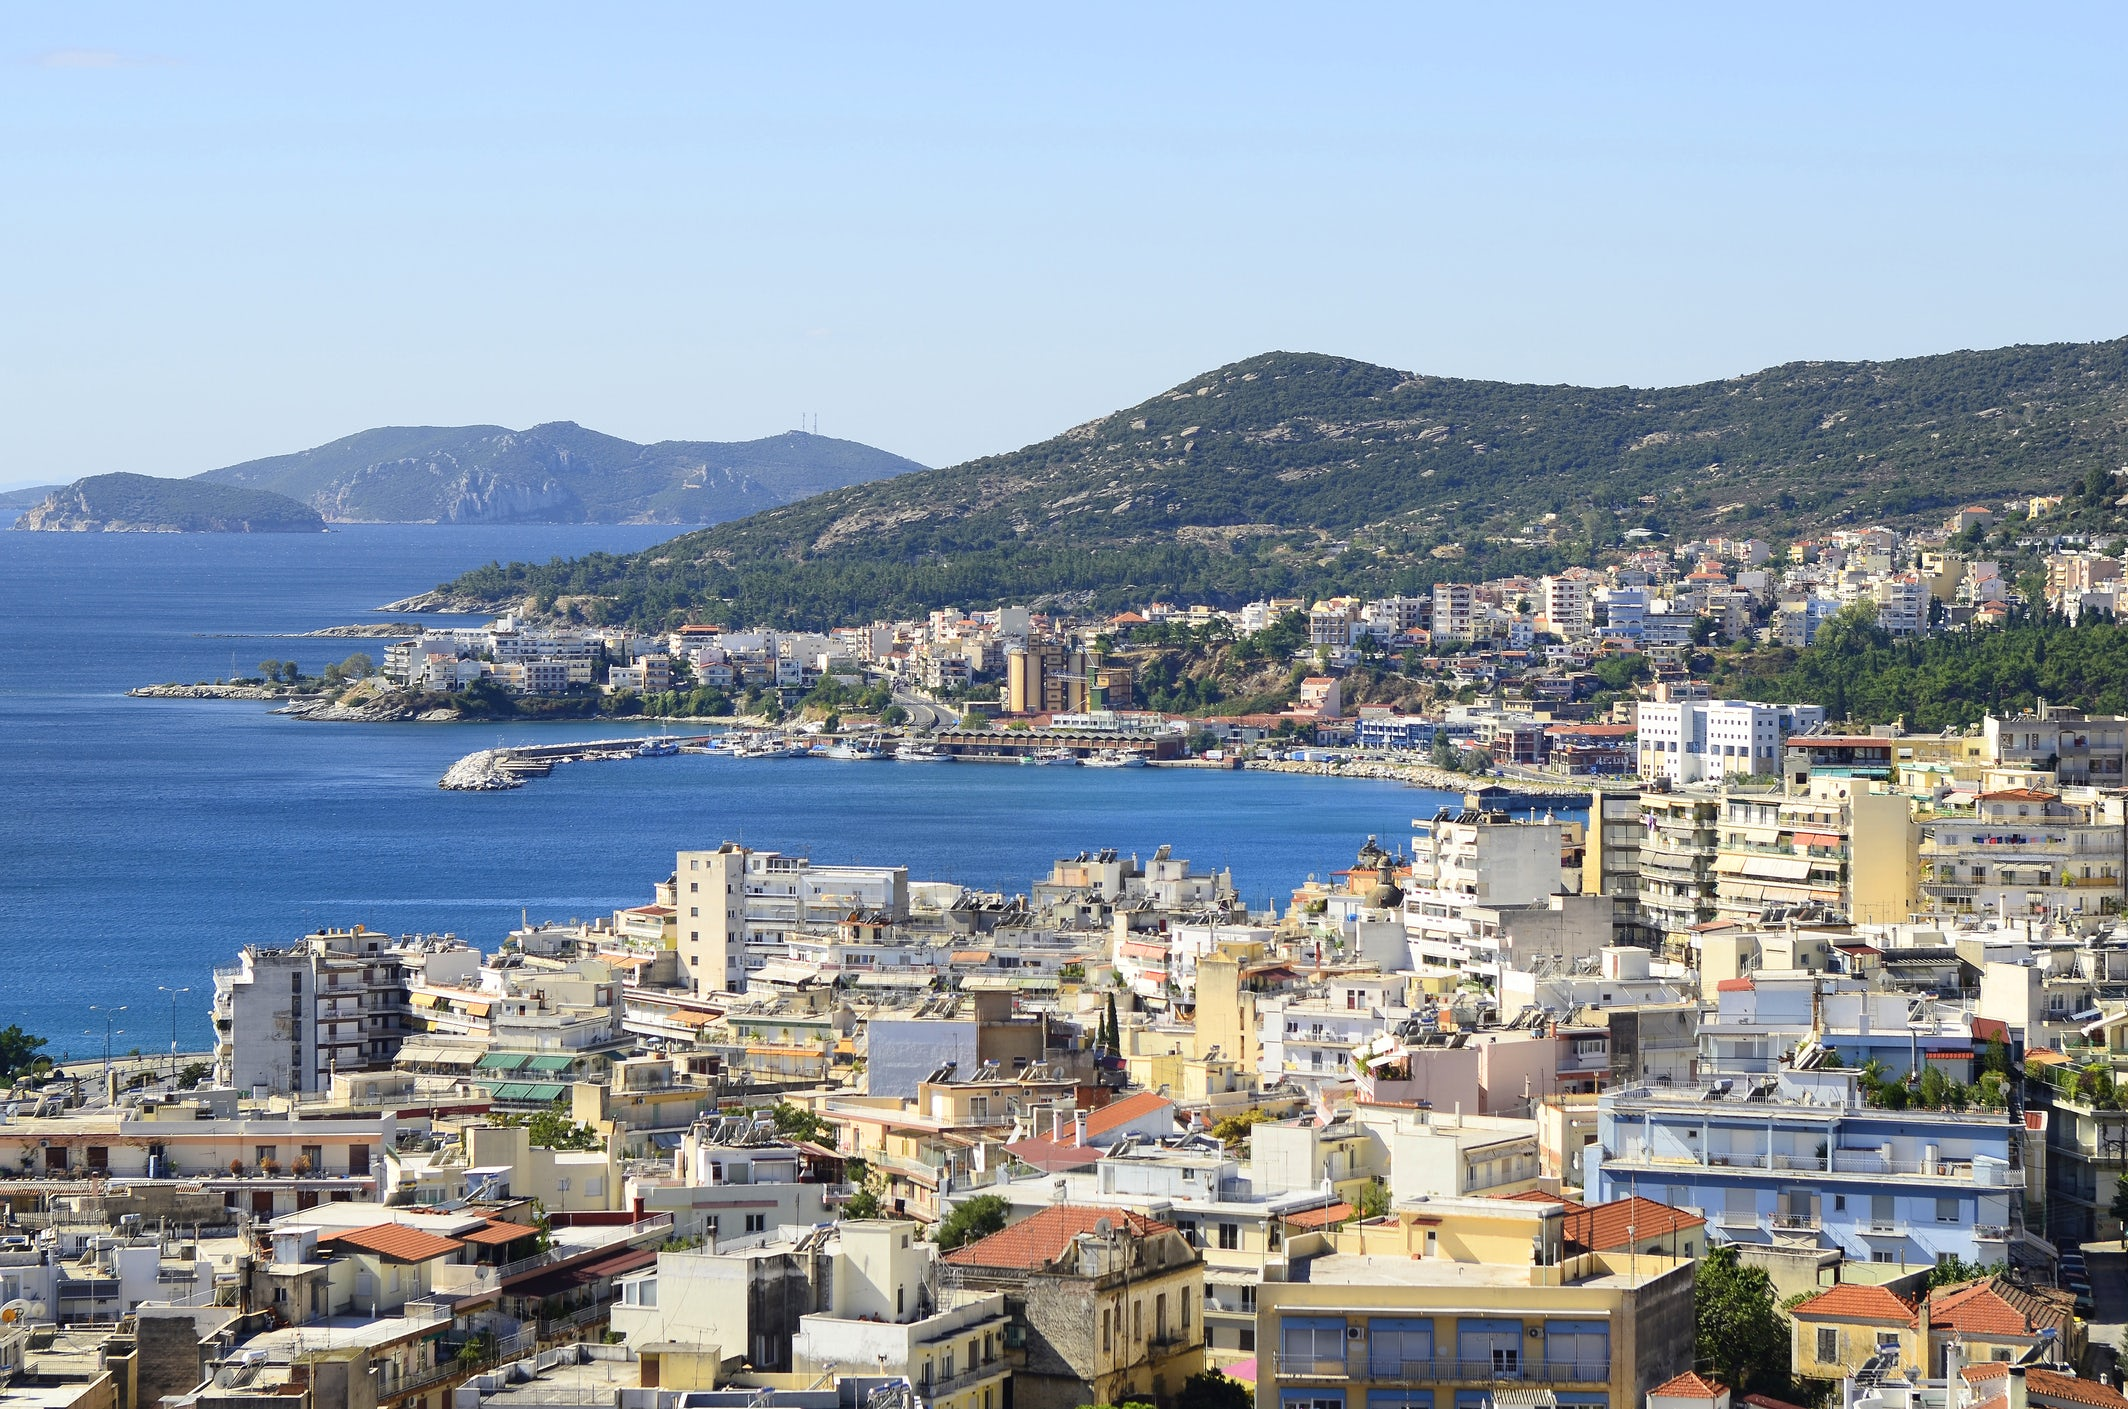 Discover the picturesque city of Kavala